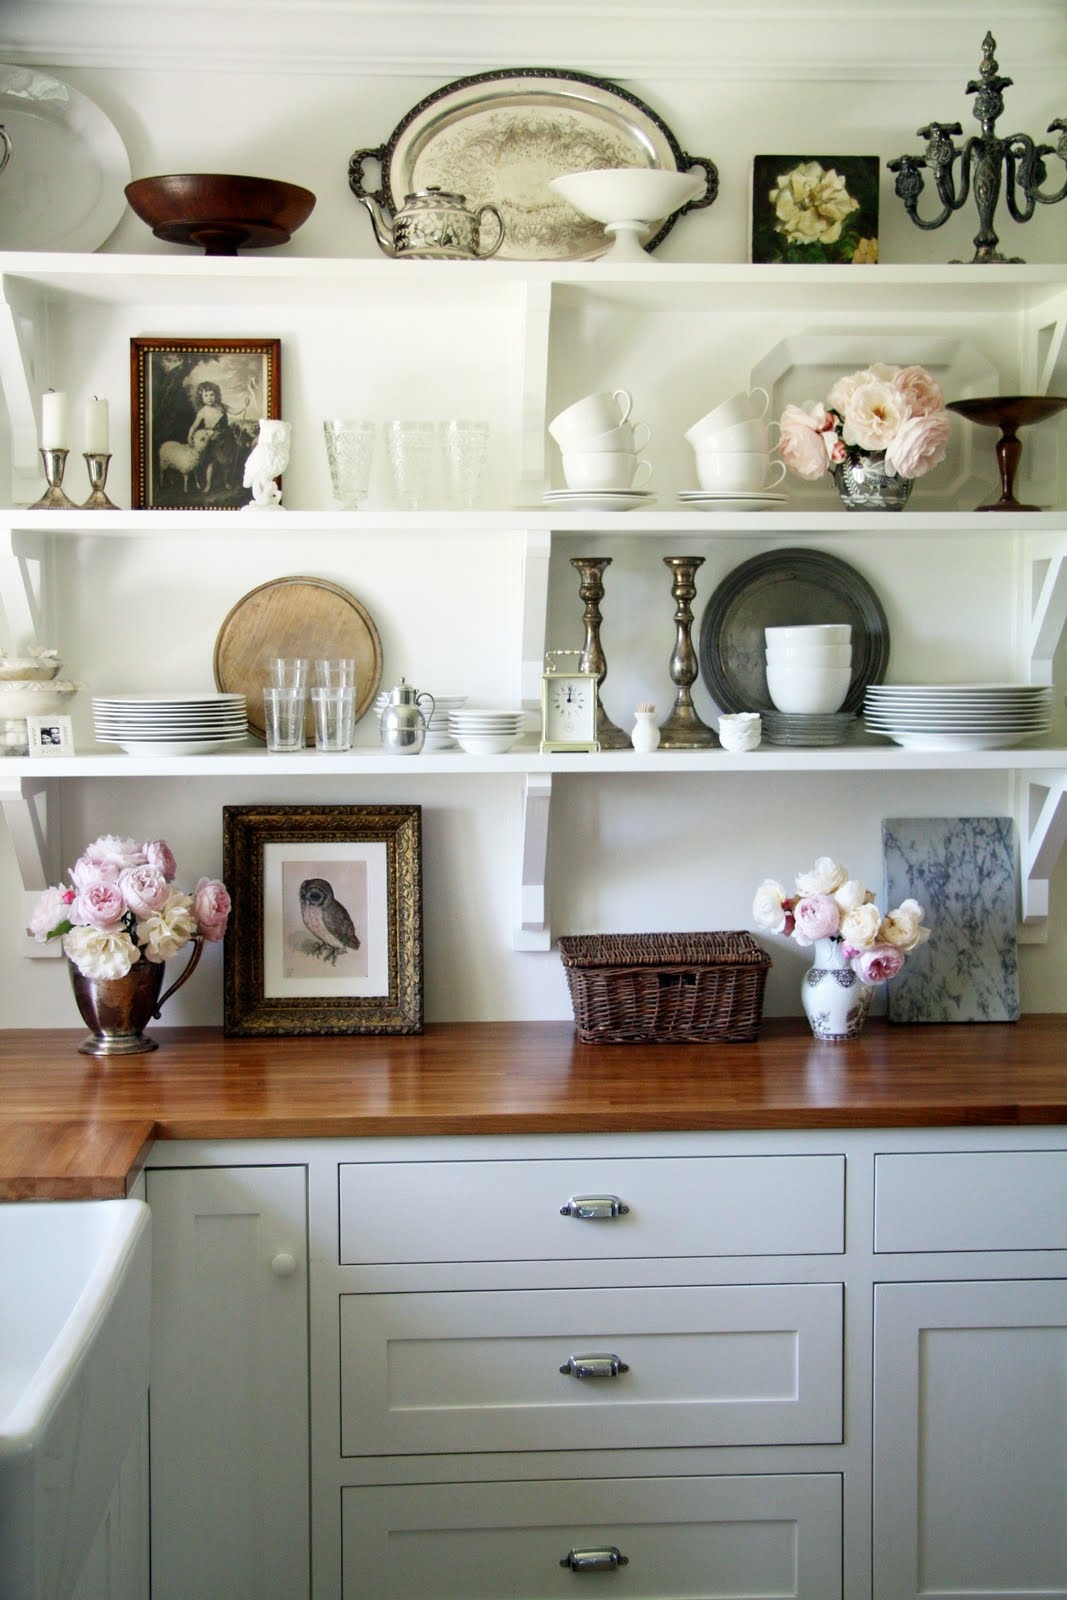 Decorating Small Kitchen Shelves